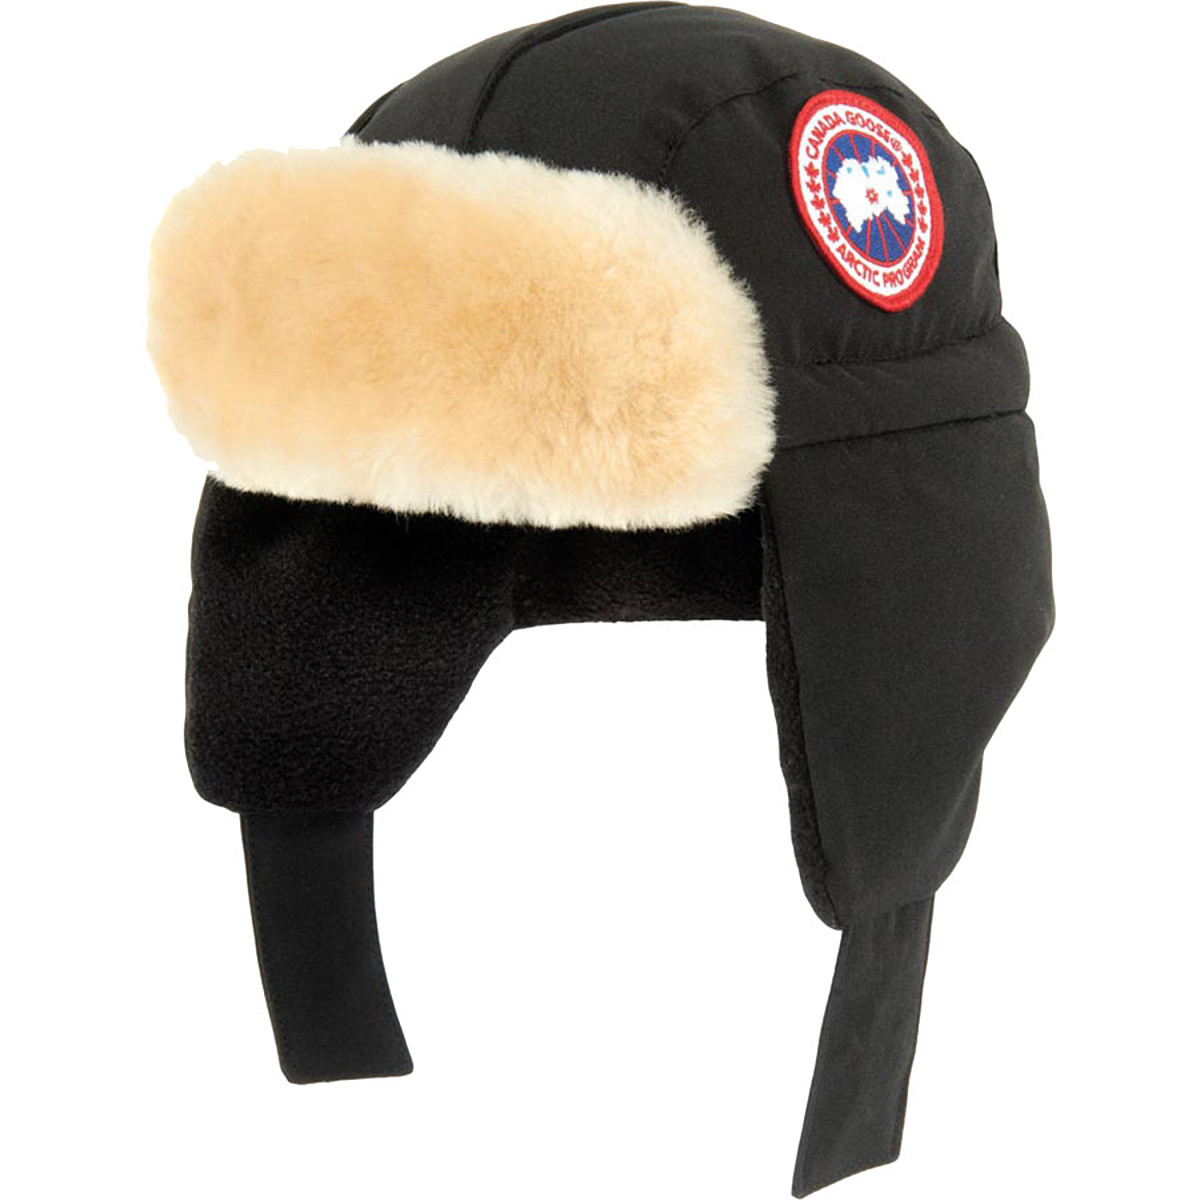 photo of a Canada Goose hat